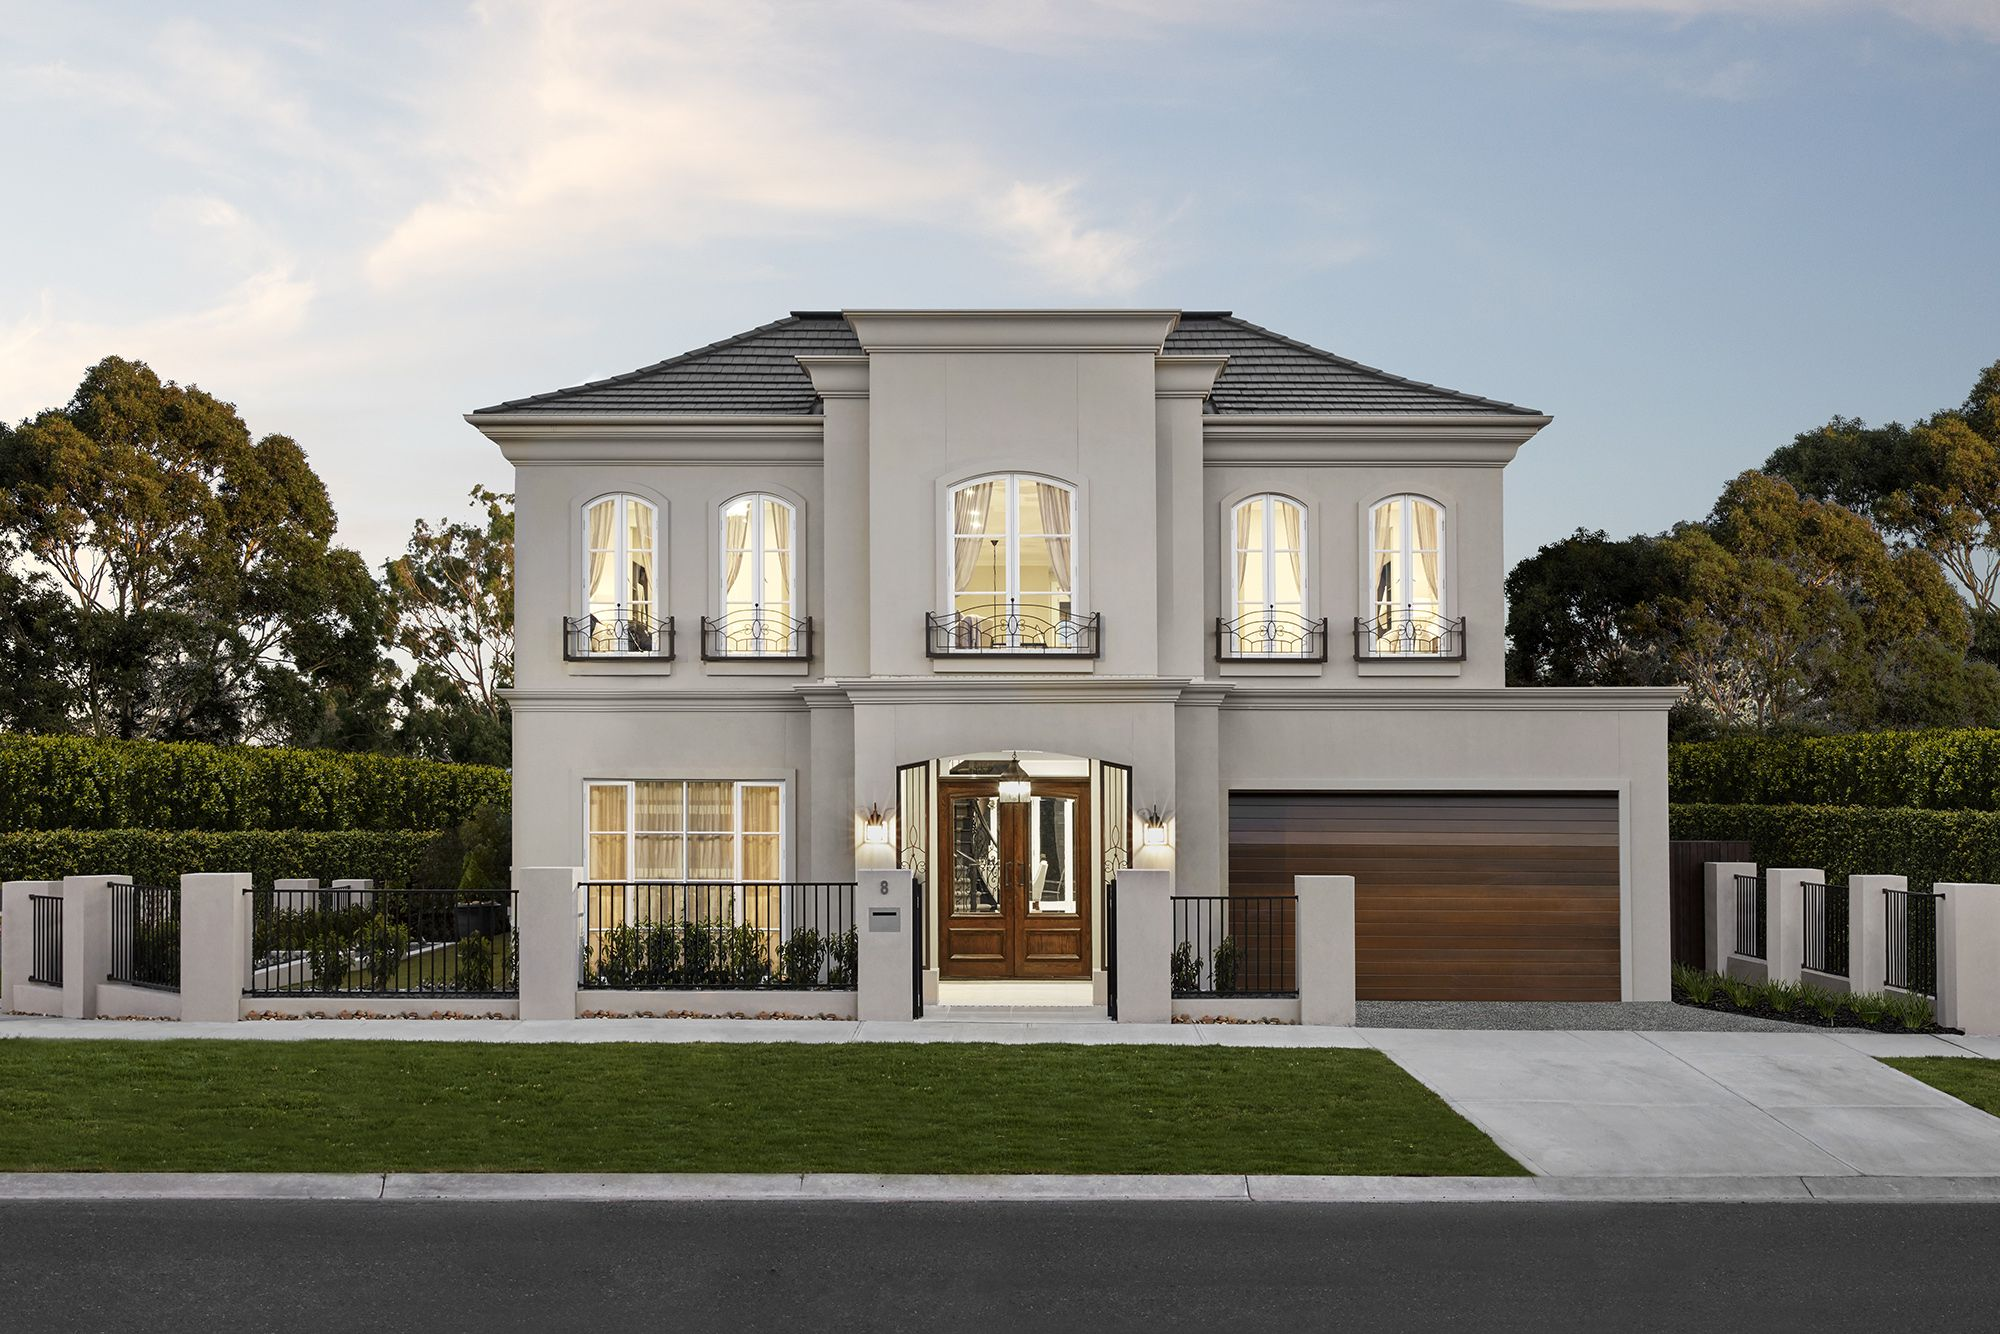 Pin By Mh Maqsood On House Plans In 2019 House Design